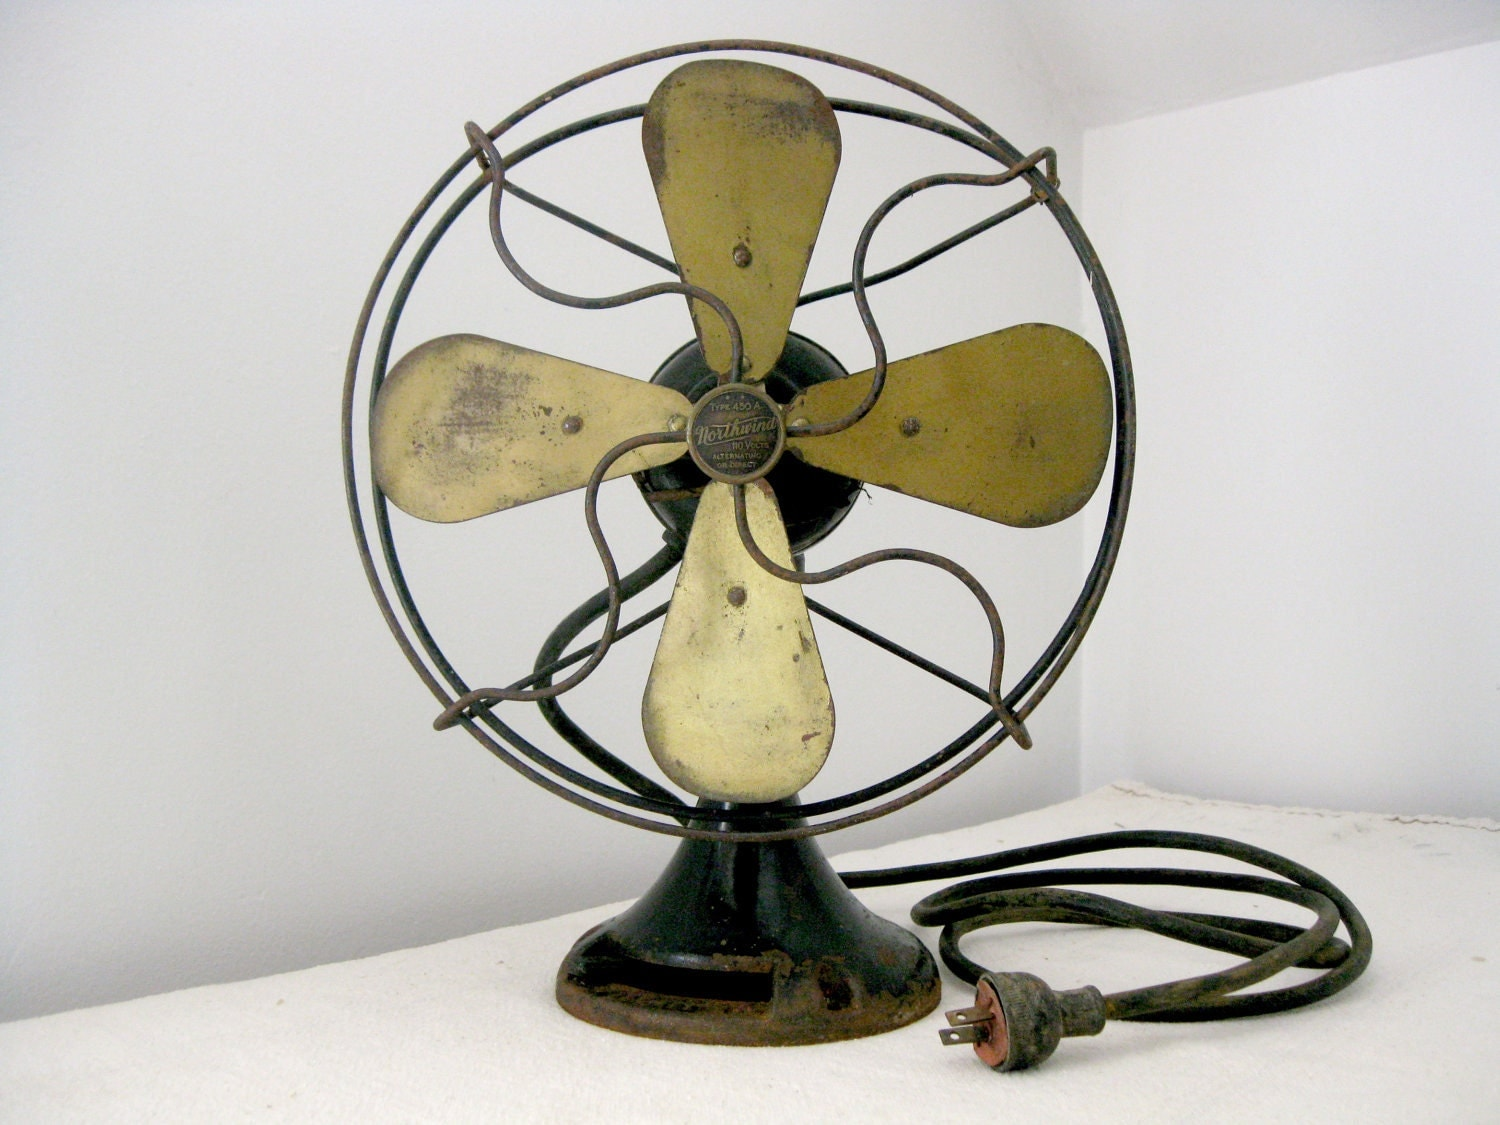 Request a custom order and have something made just for you Vintage Desk Fan